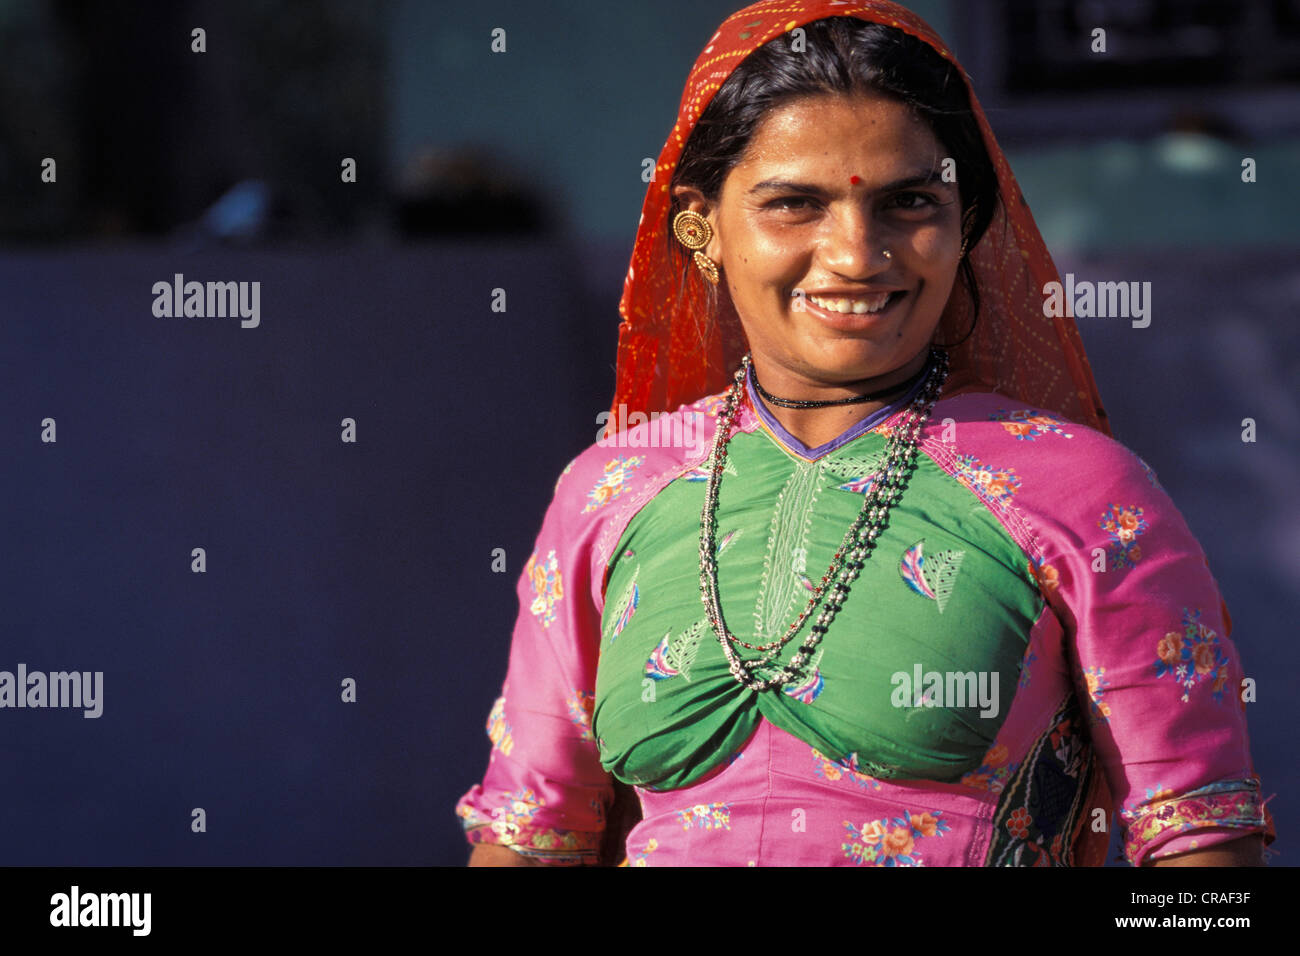 Woman, smiling, wearing traditional clothing, Kutch or Kachchh region, Gujarat, India, Asia - Stock Image